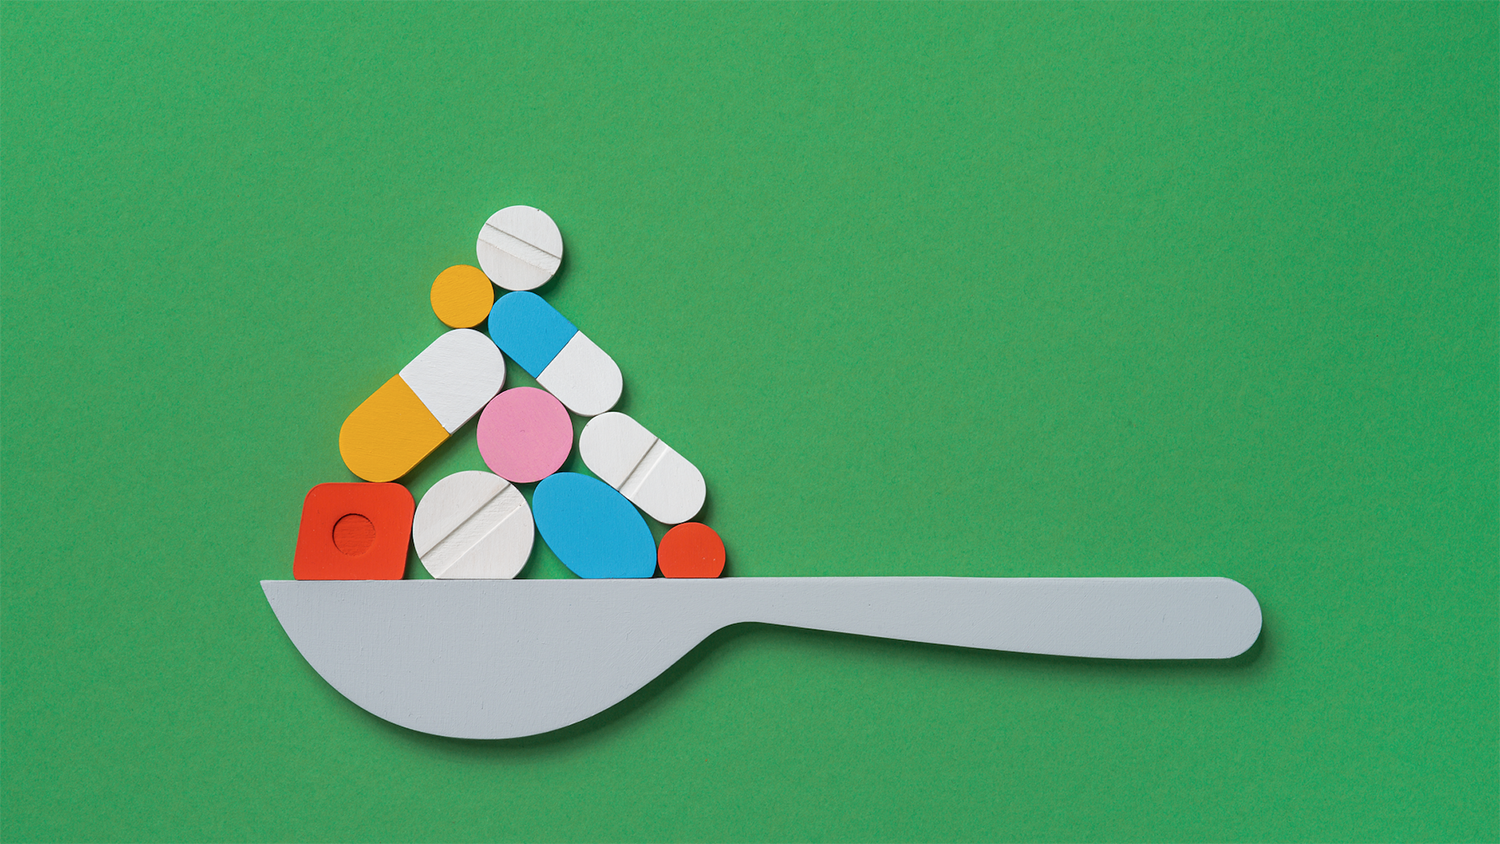 Illustration of a spoon with pills